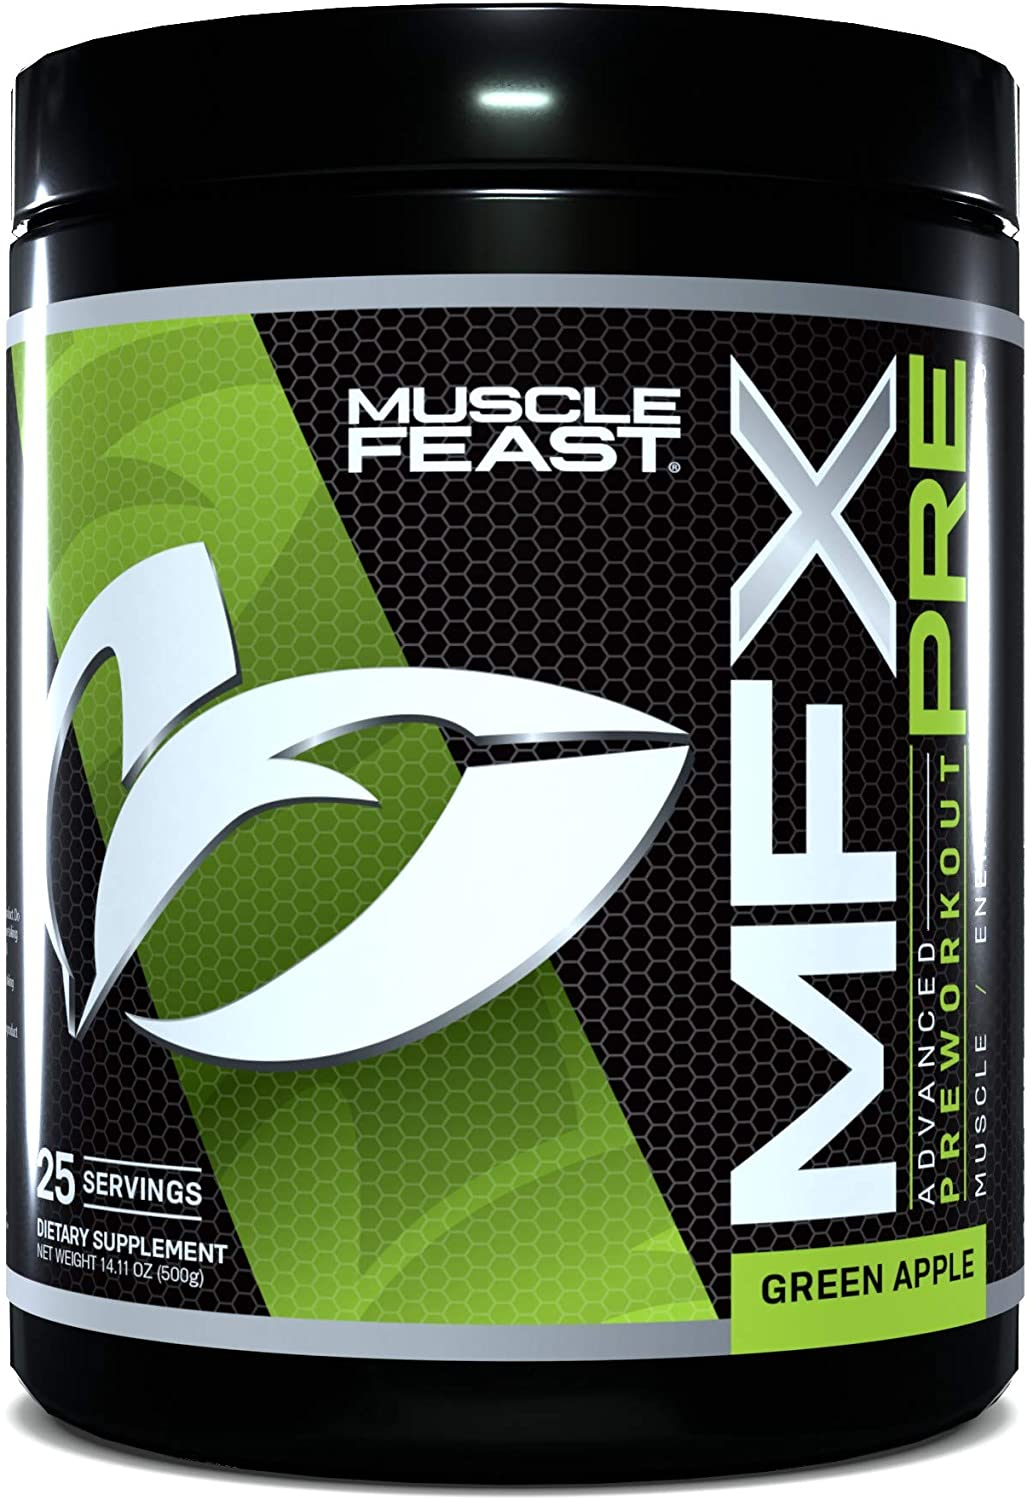 MUSCLE FEAST MFX PRE, Intense Preworkout Powder, CarnoSyn®, Natural Caffeine, Nitric Oxide, 25 Servings, 500g Container (Green Apple)